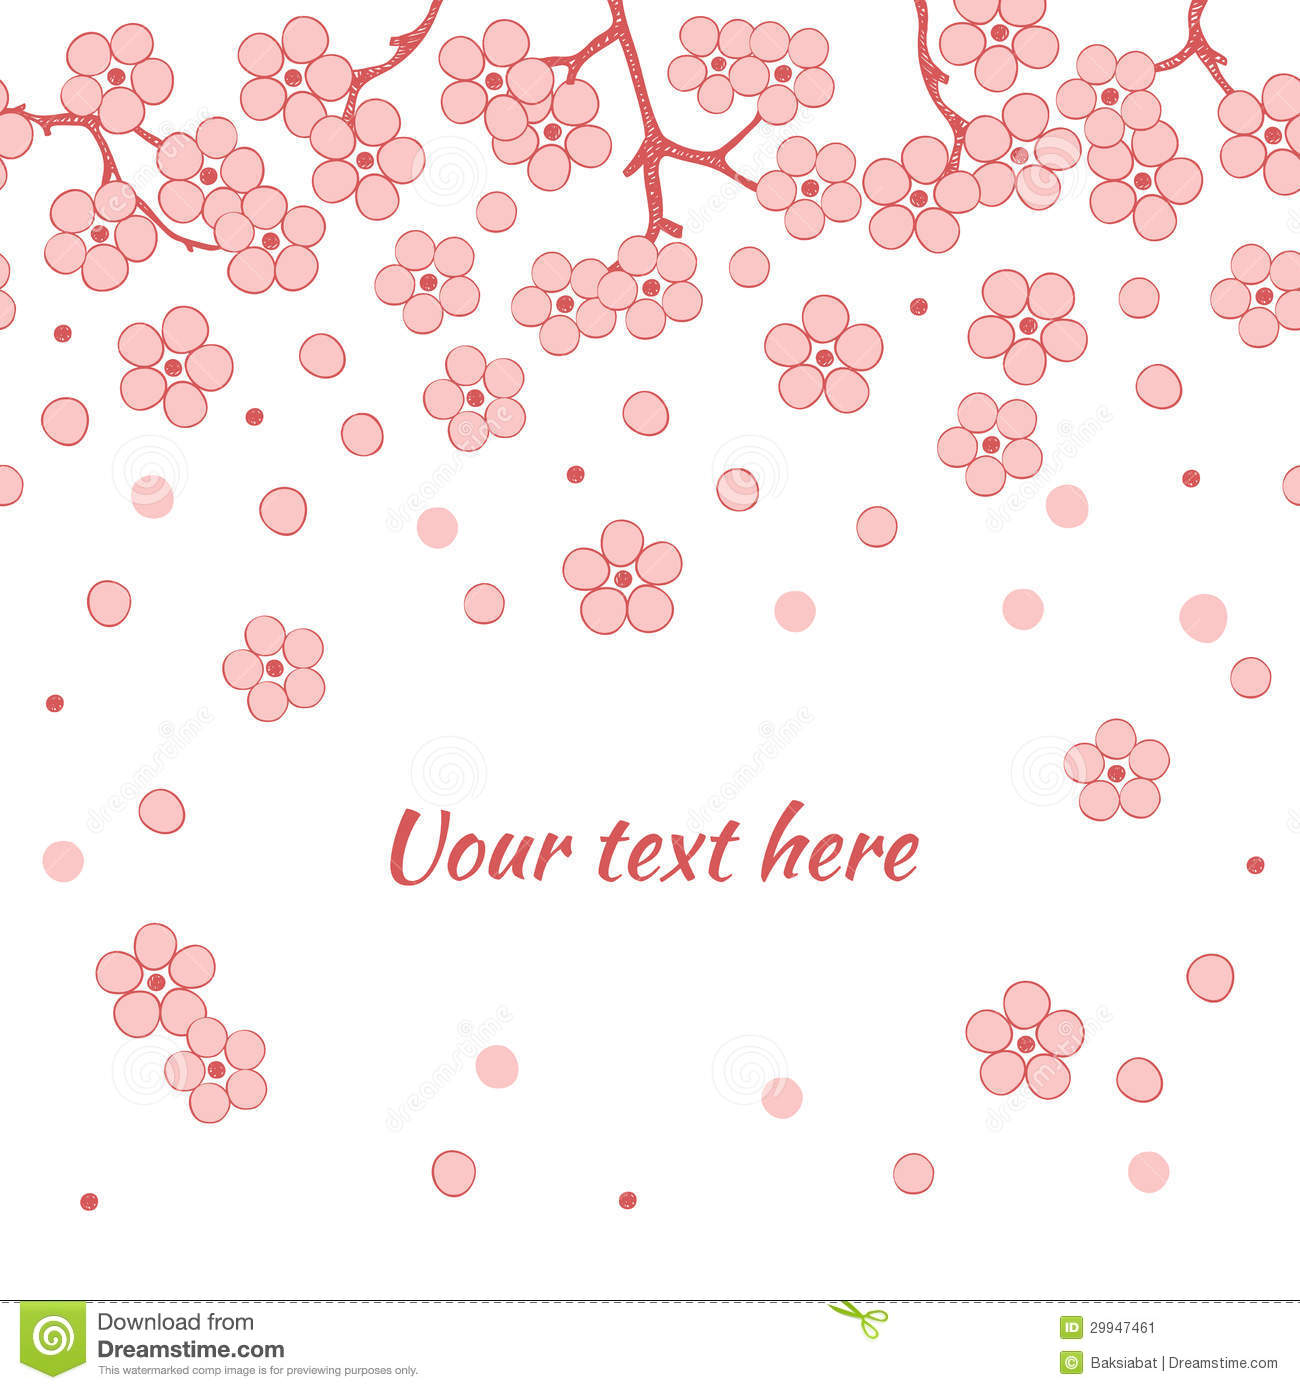 Abstract Romantic Vector Floral Background With Sakura